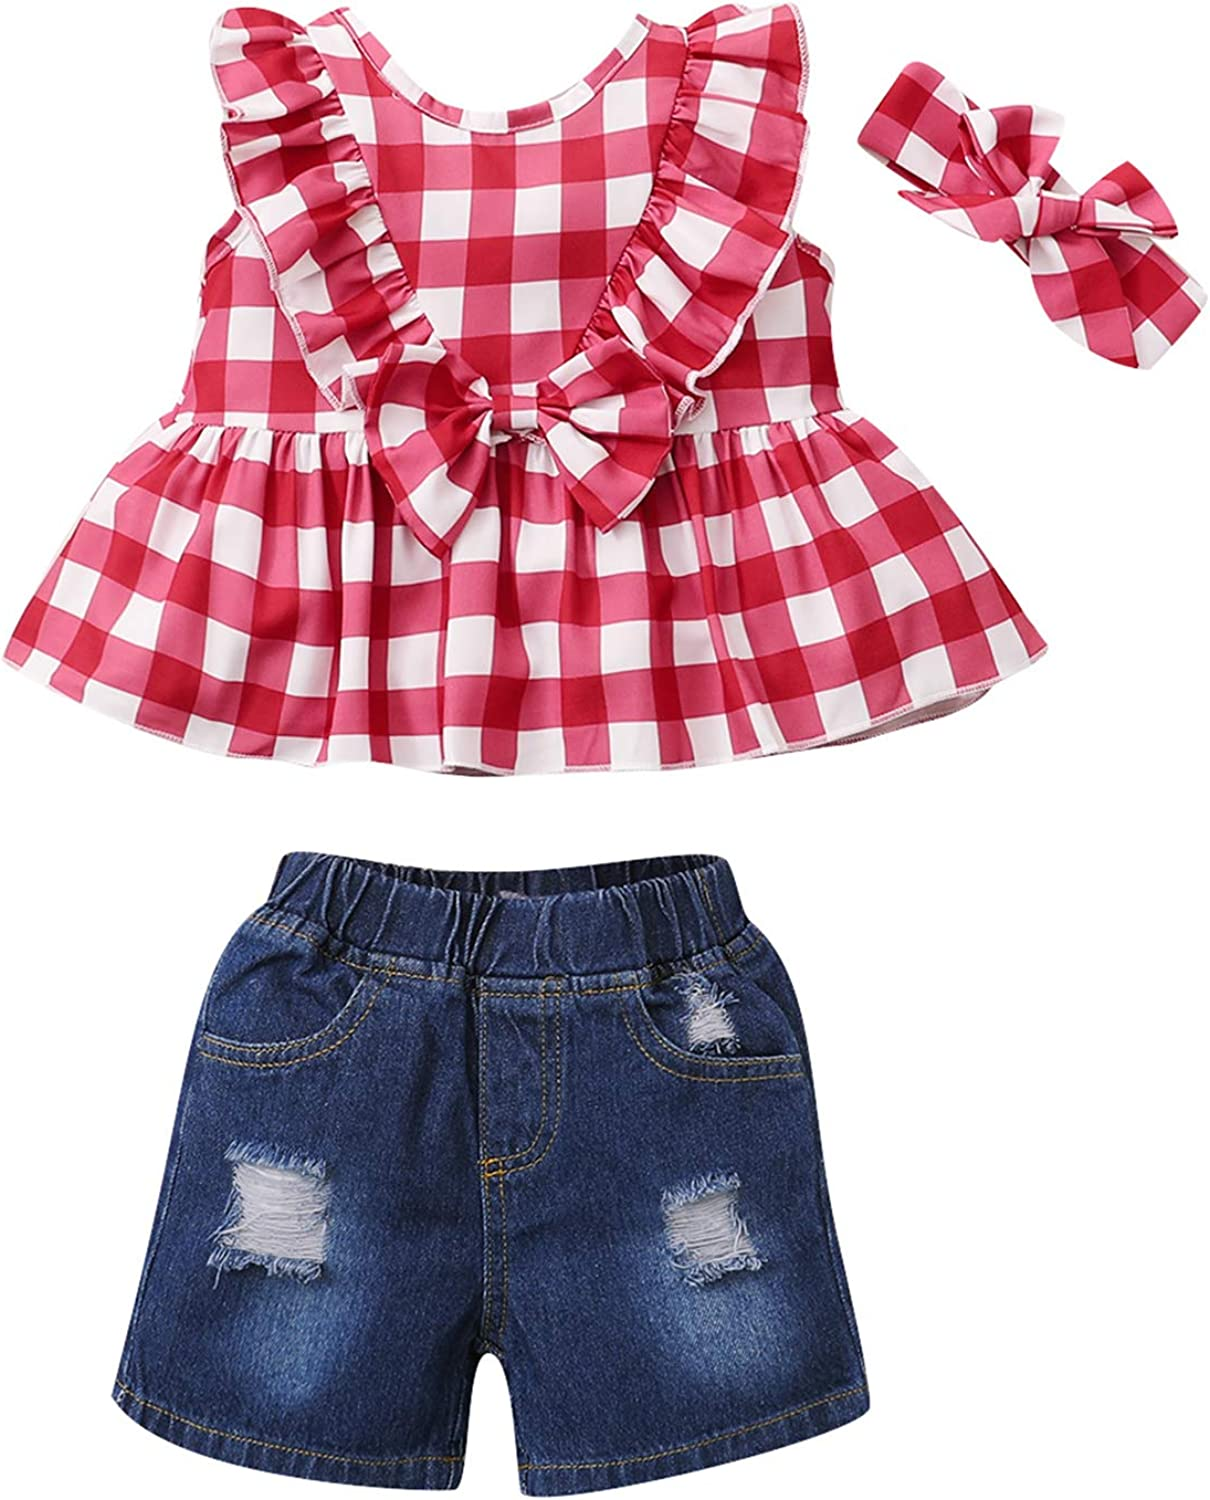 CARETOO 3Pcs Baby Girls Clothes 12M-4T Outfits Set, Girl Short Sleeve Top Short Pants with Headband